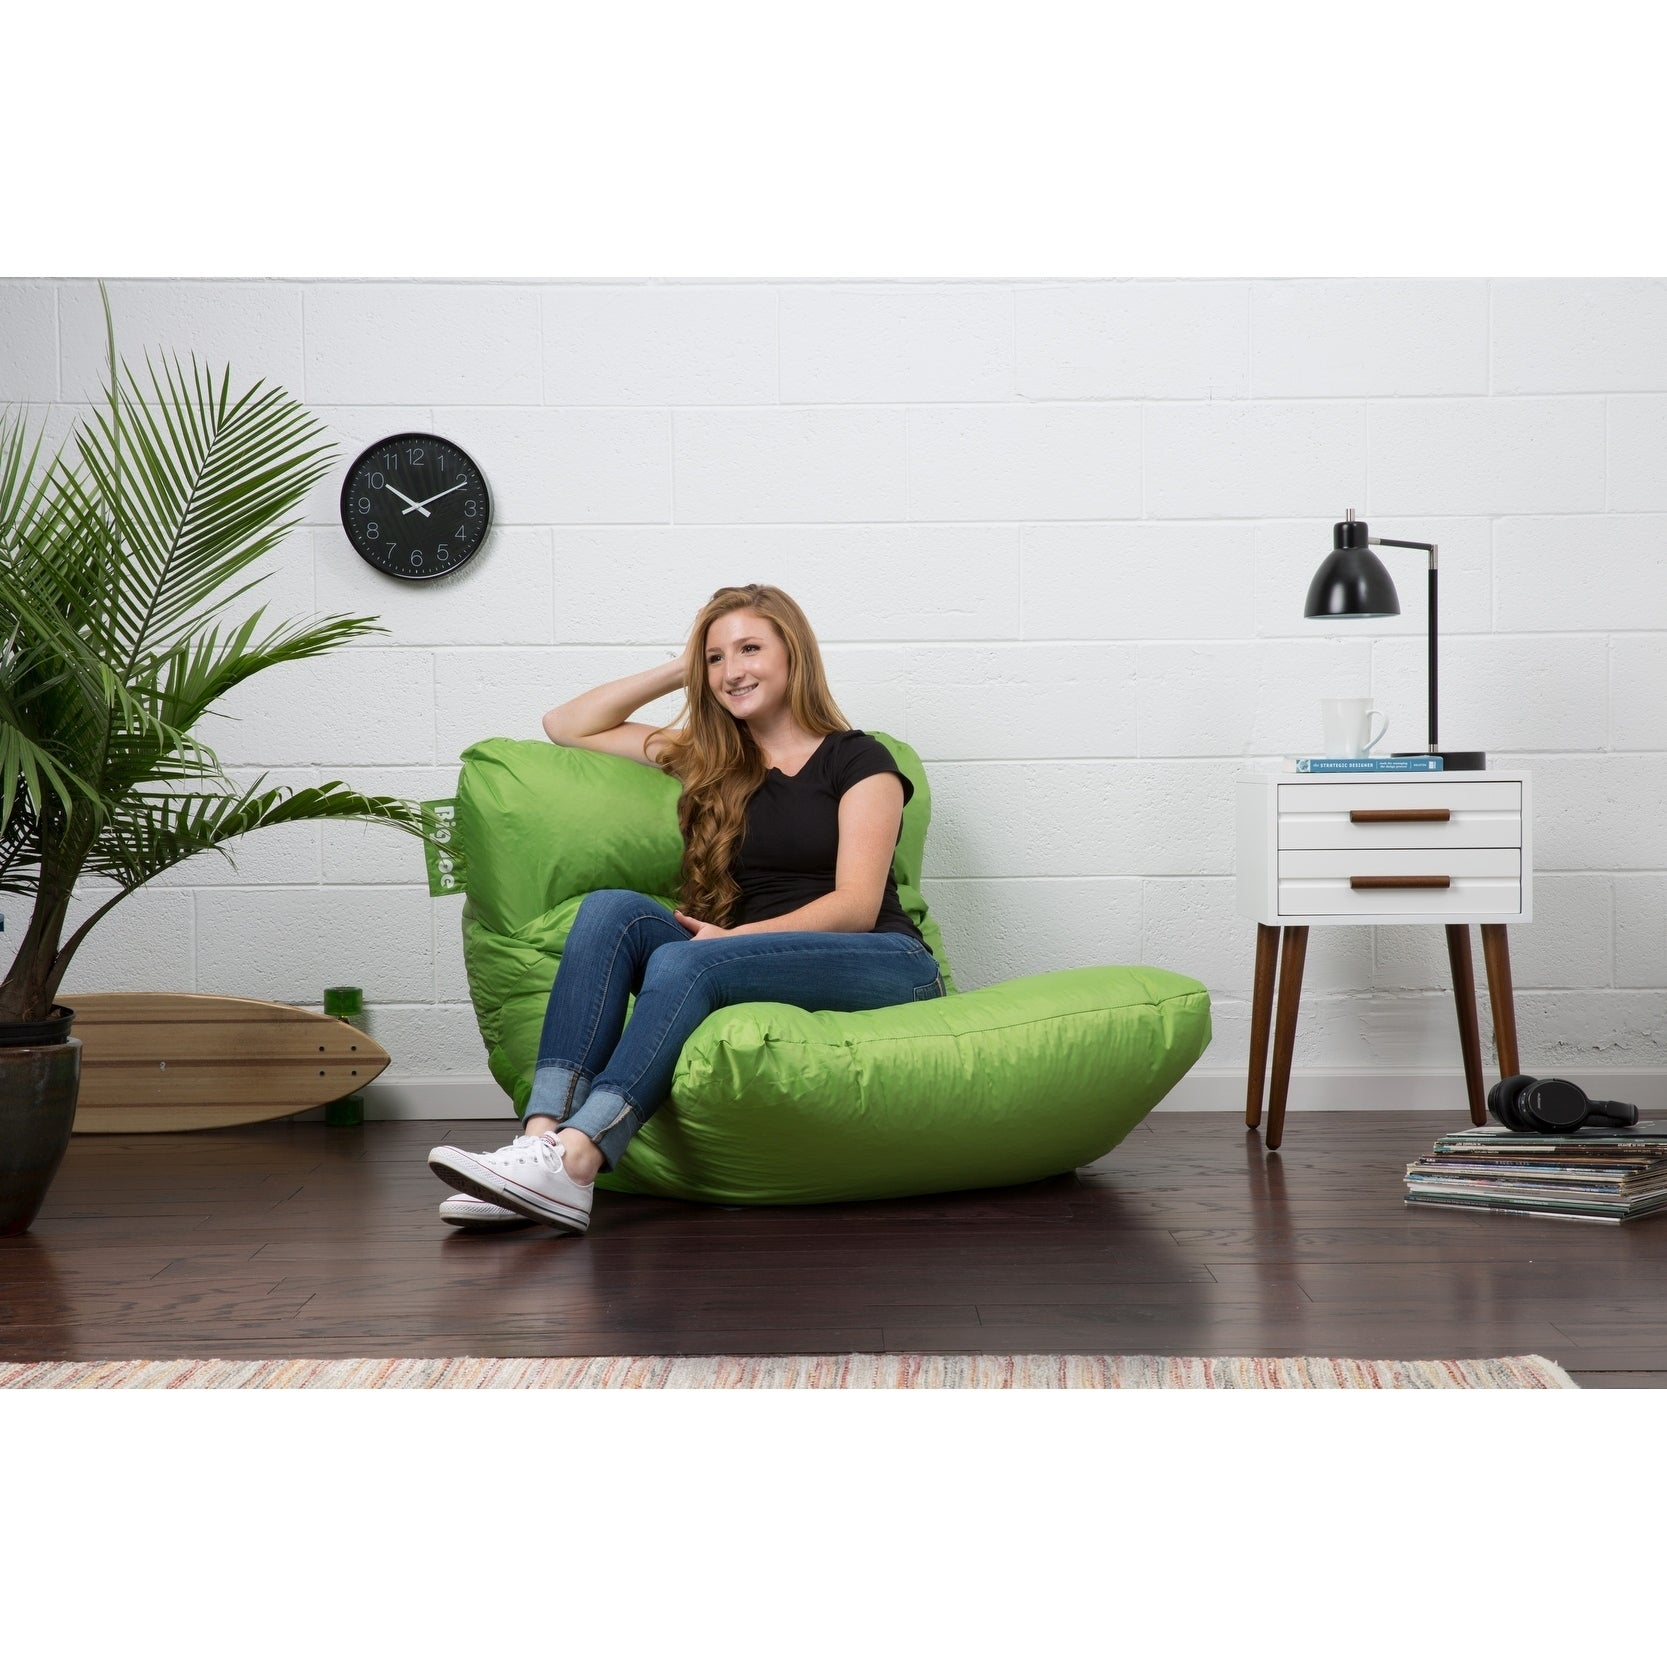 Wondrous Details About Big Joe Roma Bean Bag Chair Smartmax Caraccident5 Cool Chair Designs And Ideas Caraccident5Info